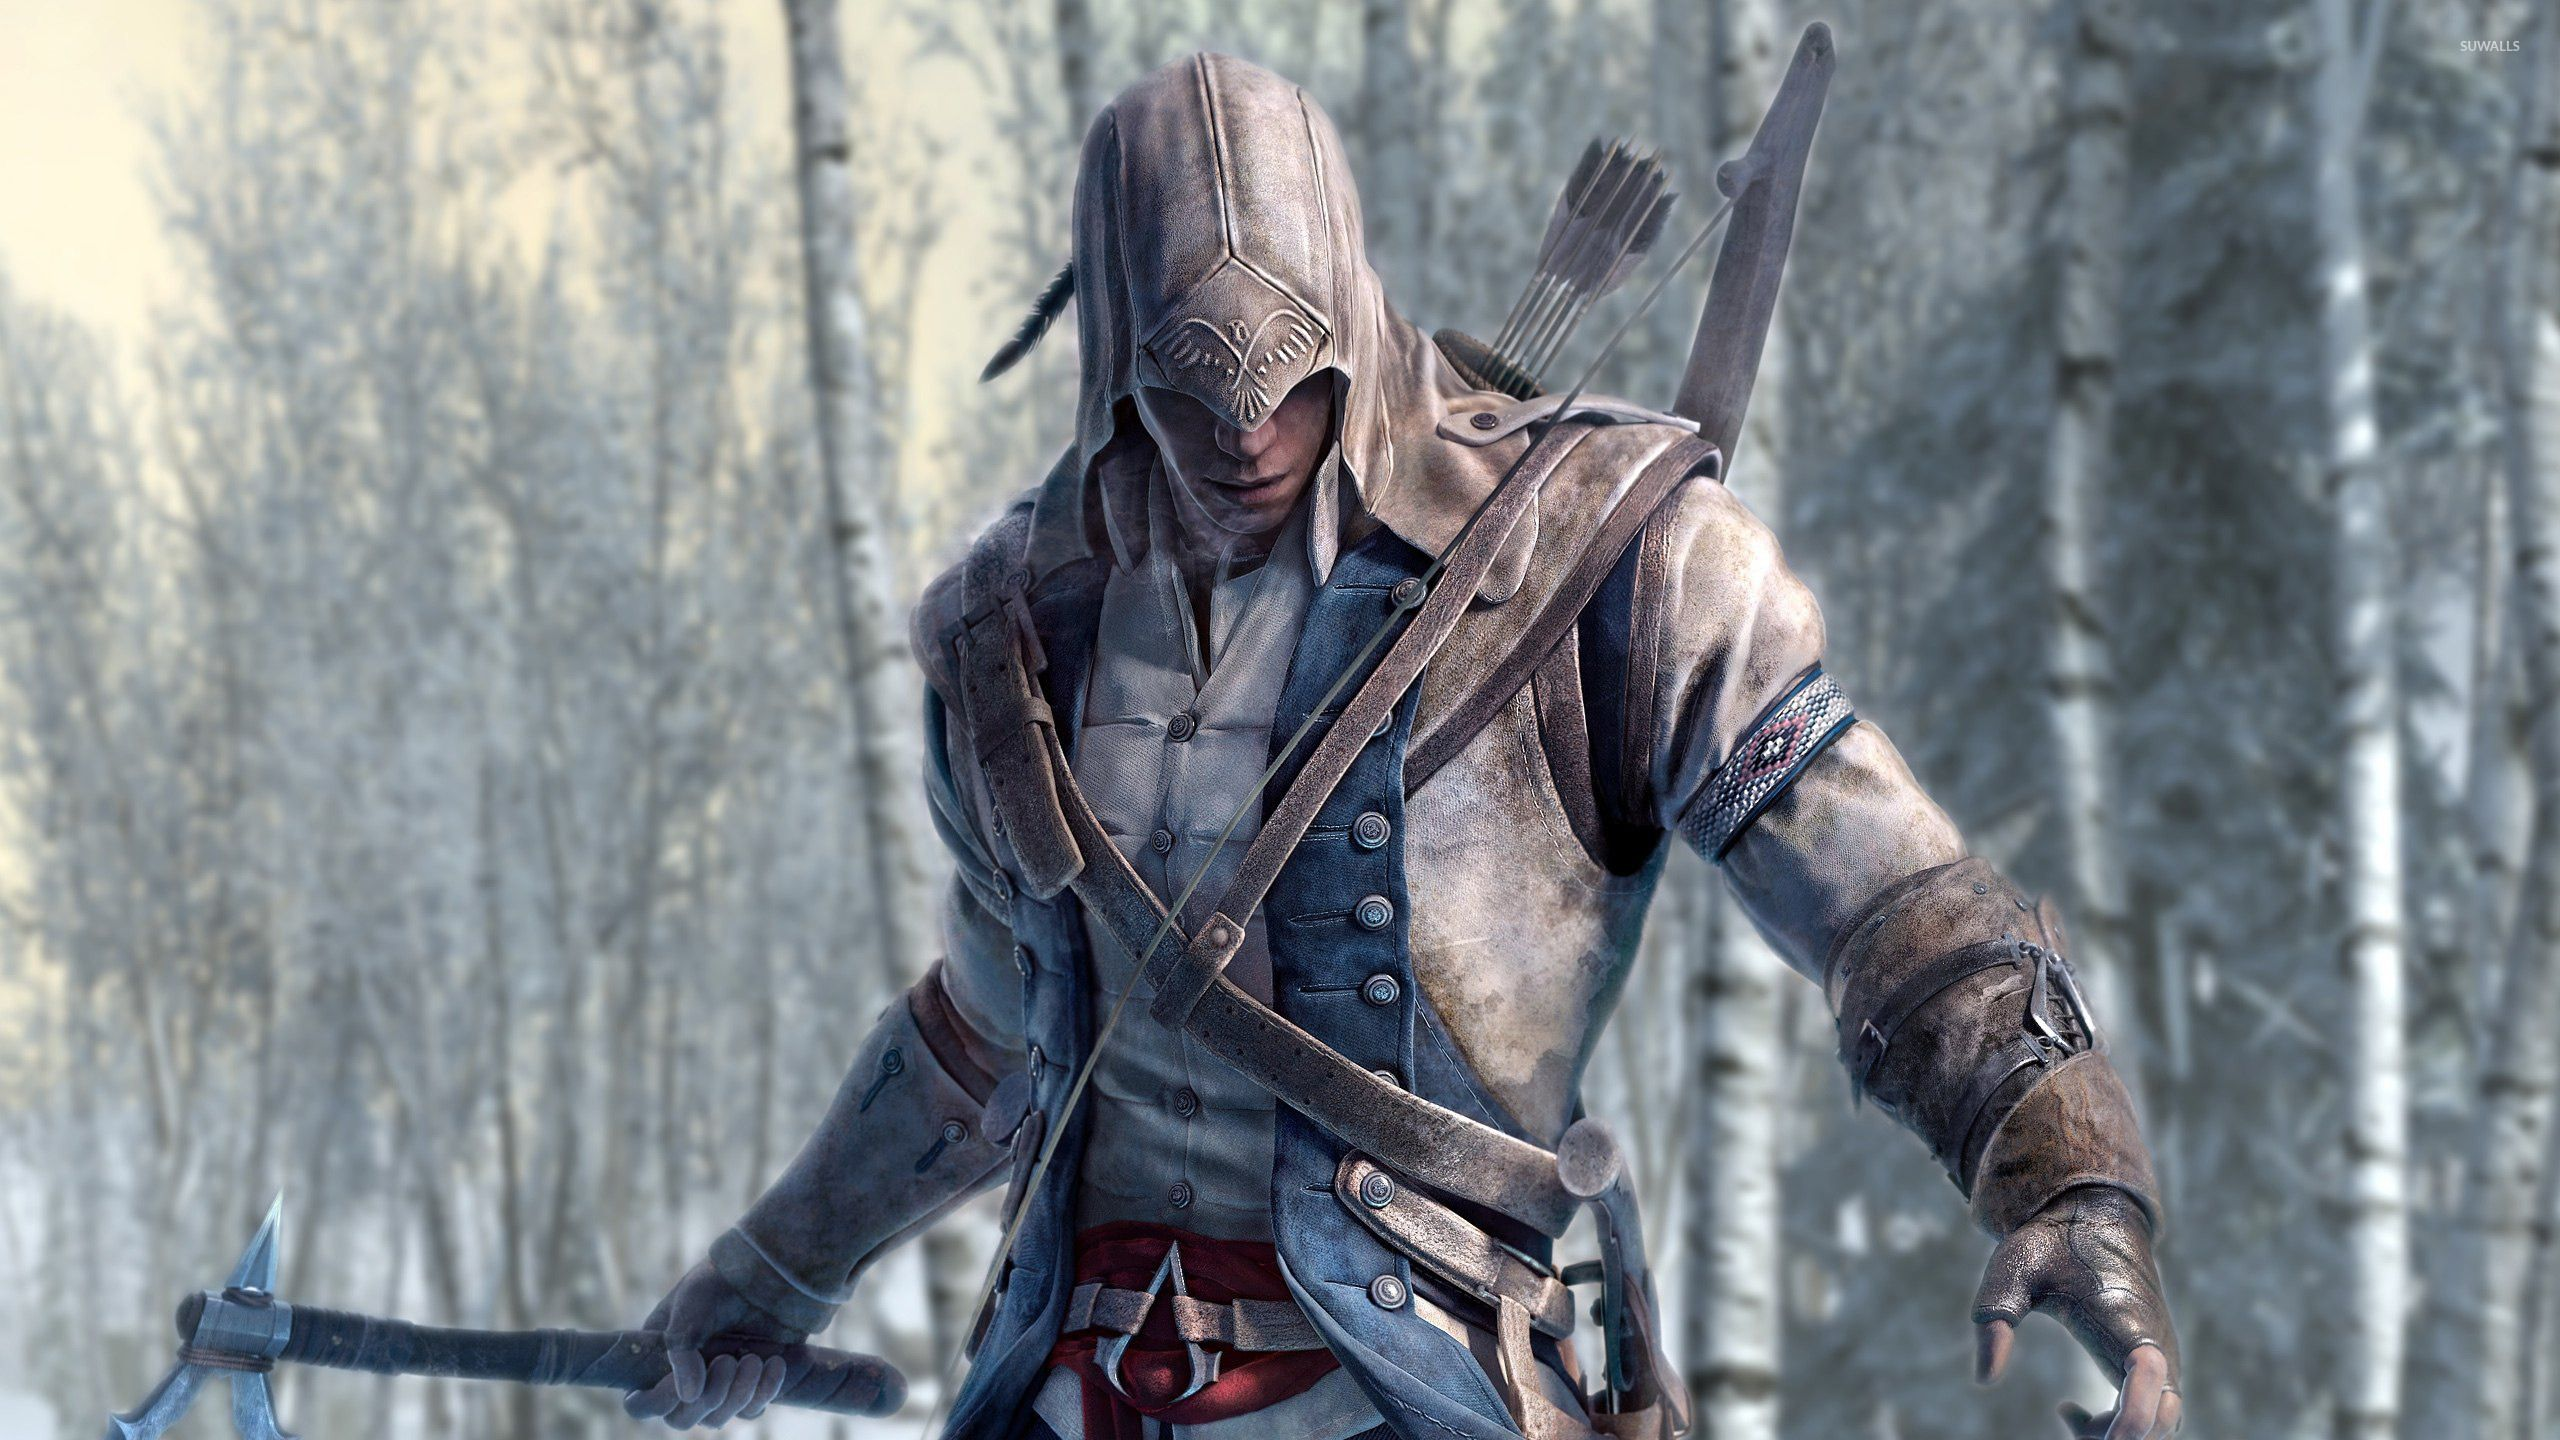 Assassin S Creed Iii Wallpaper Connor Kenway Face Hd 2560x1440